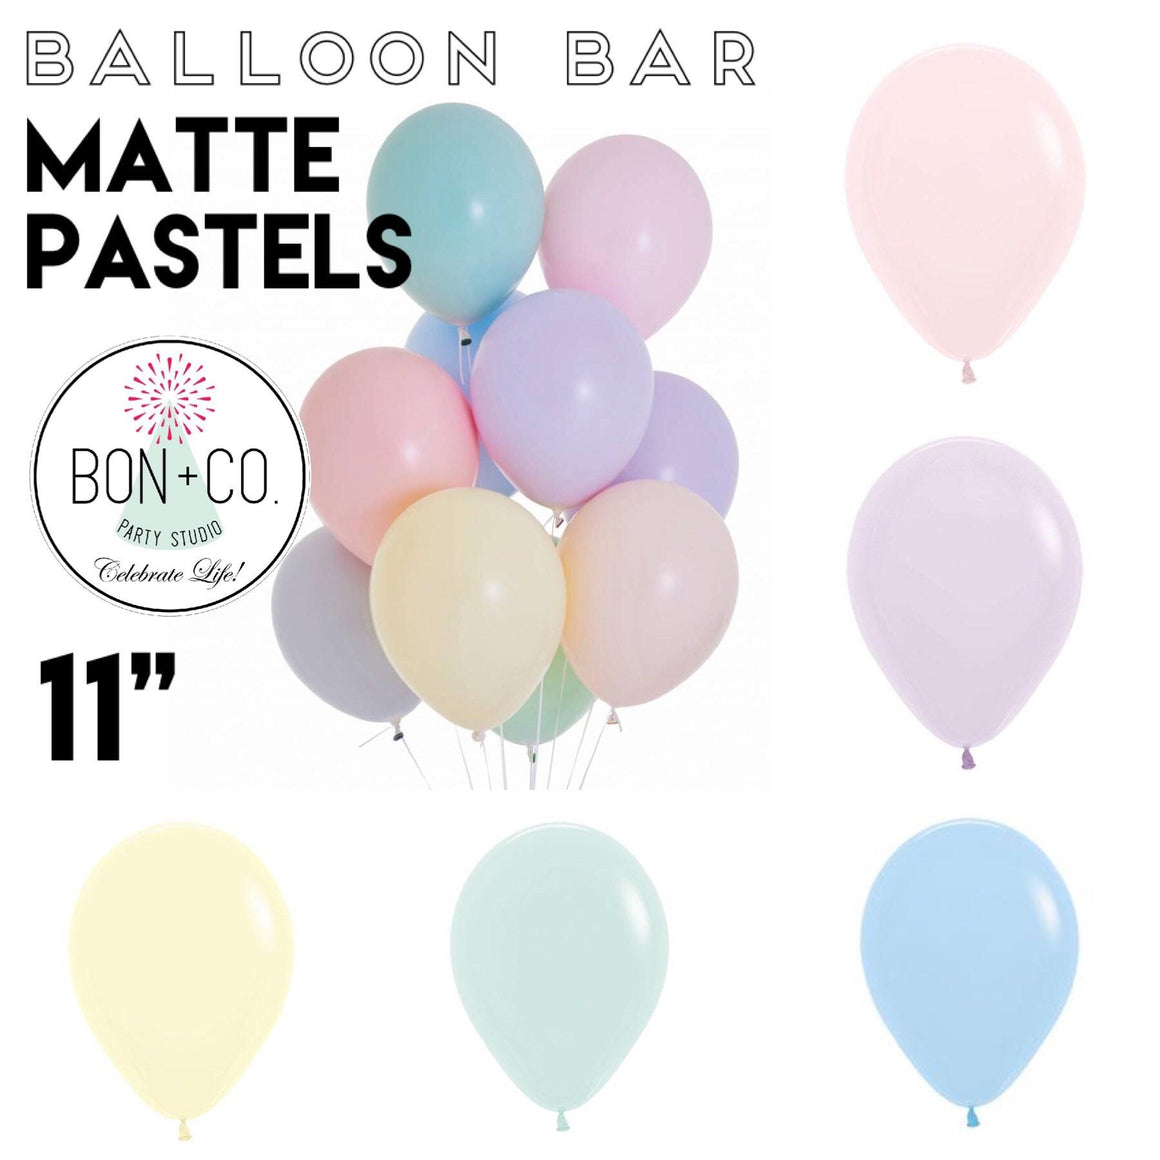 "BALLOON BAR - MATTE PASTELS 11"", Balloons, Sempertex - Bon + Co. Party Studio"